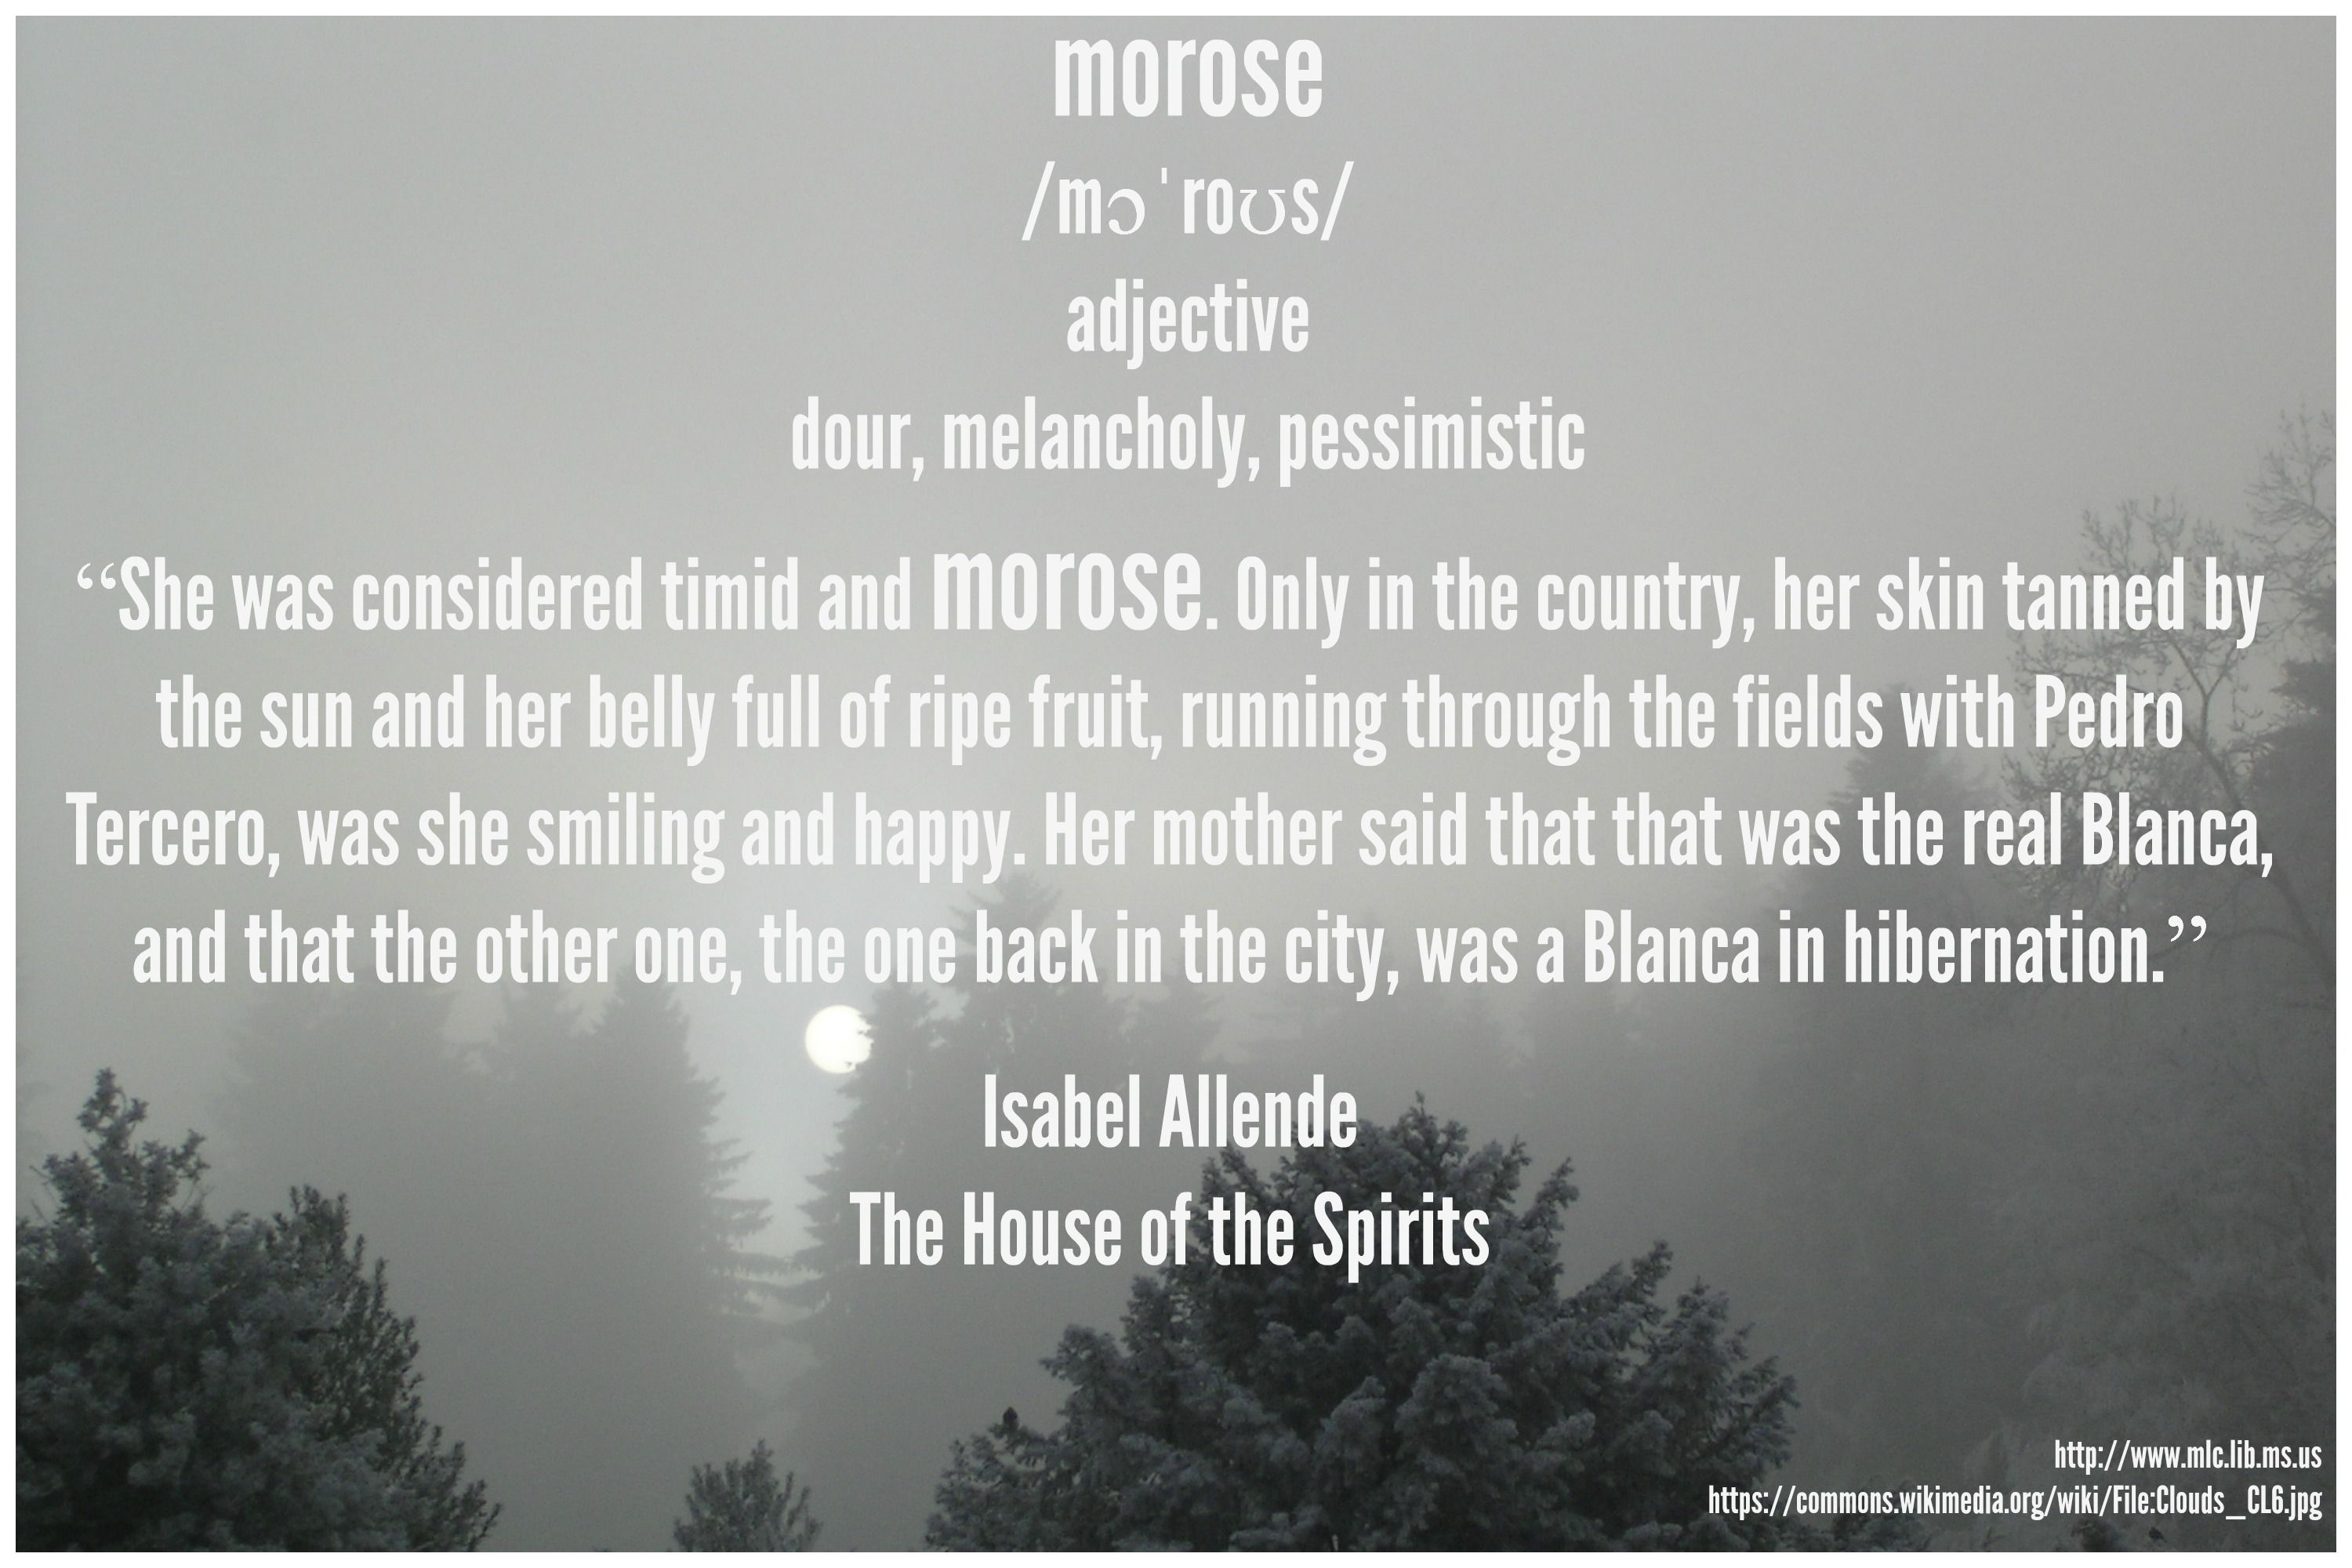 Morose Means Dour Melancholy And Pessimistic Read It In Isabel